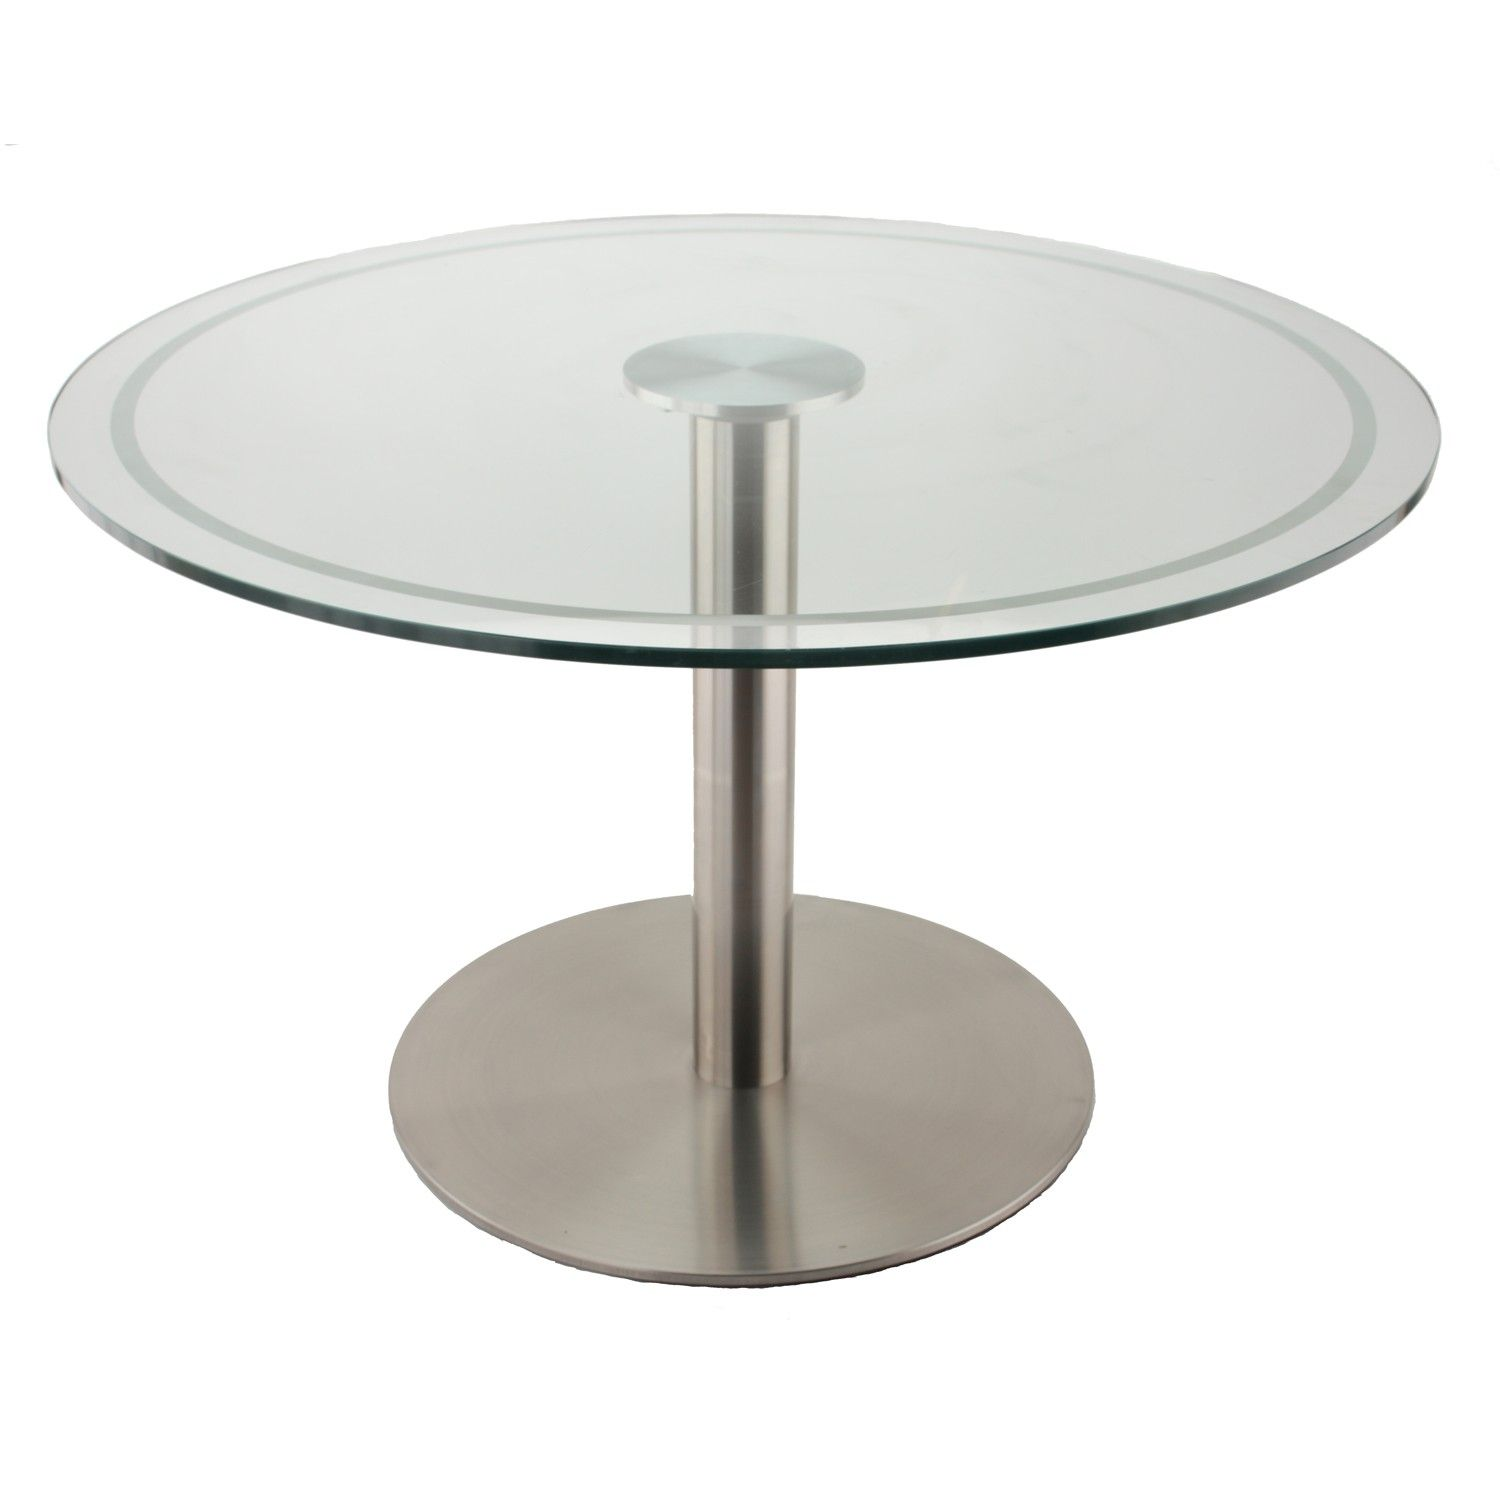 The RFL750 Stainless Steel Table Base with Glass Table Top using